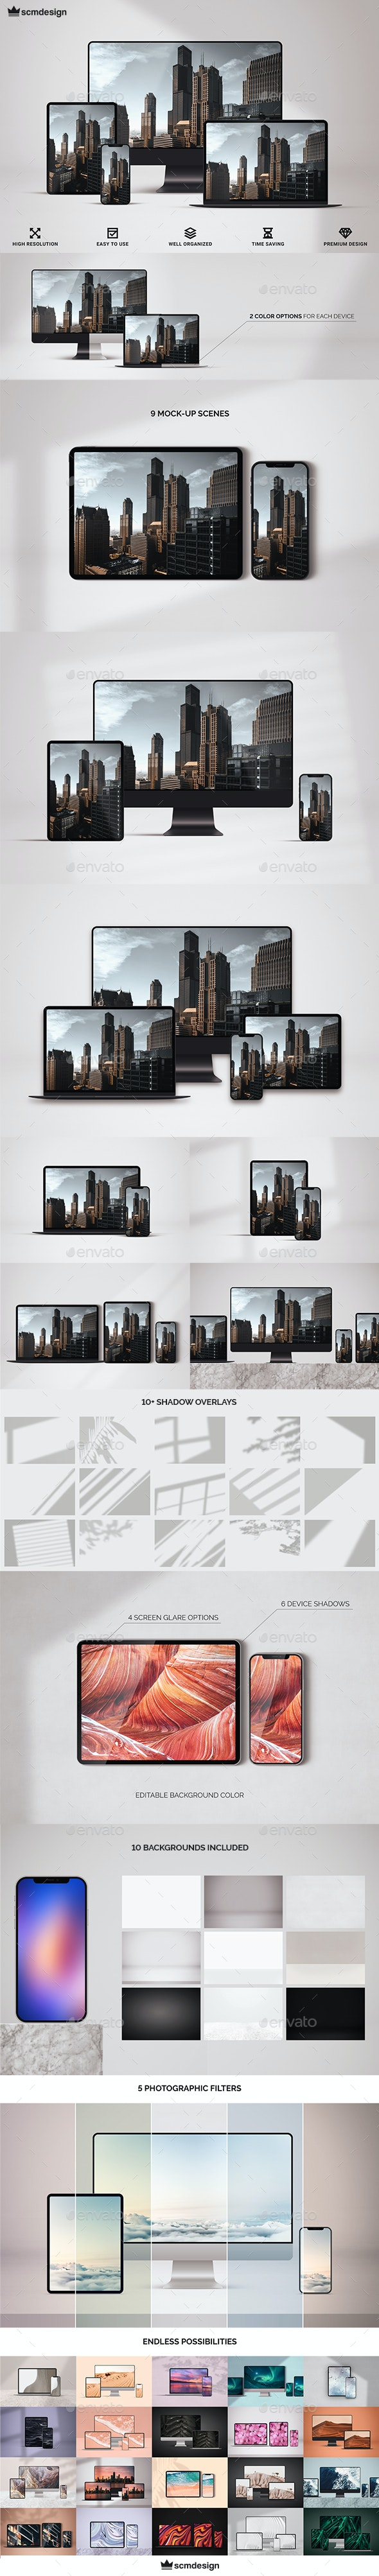 Multi Device Responsive Screen Mock-up - Displays Product Mock-Ups